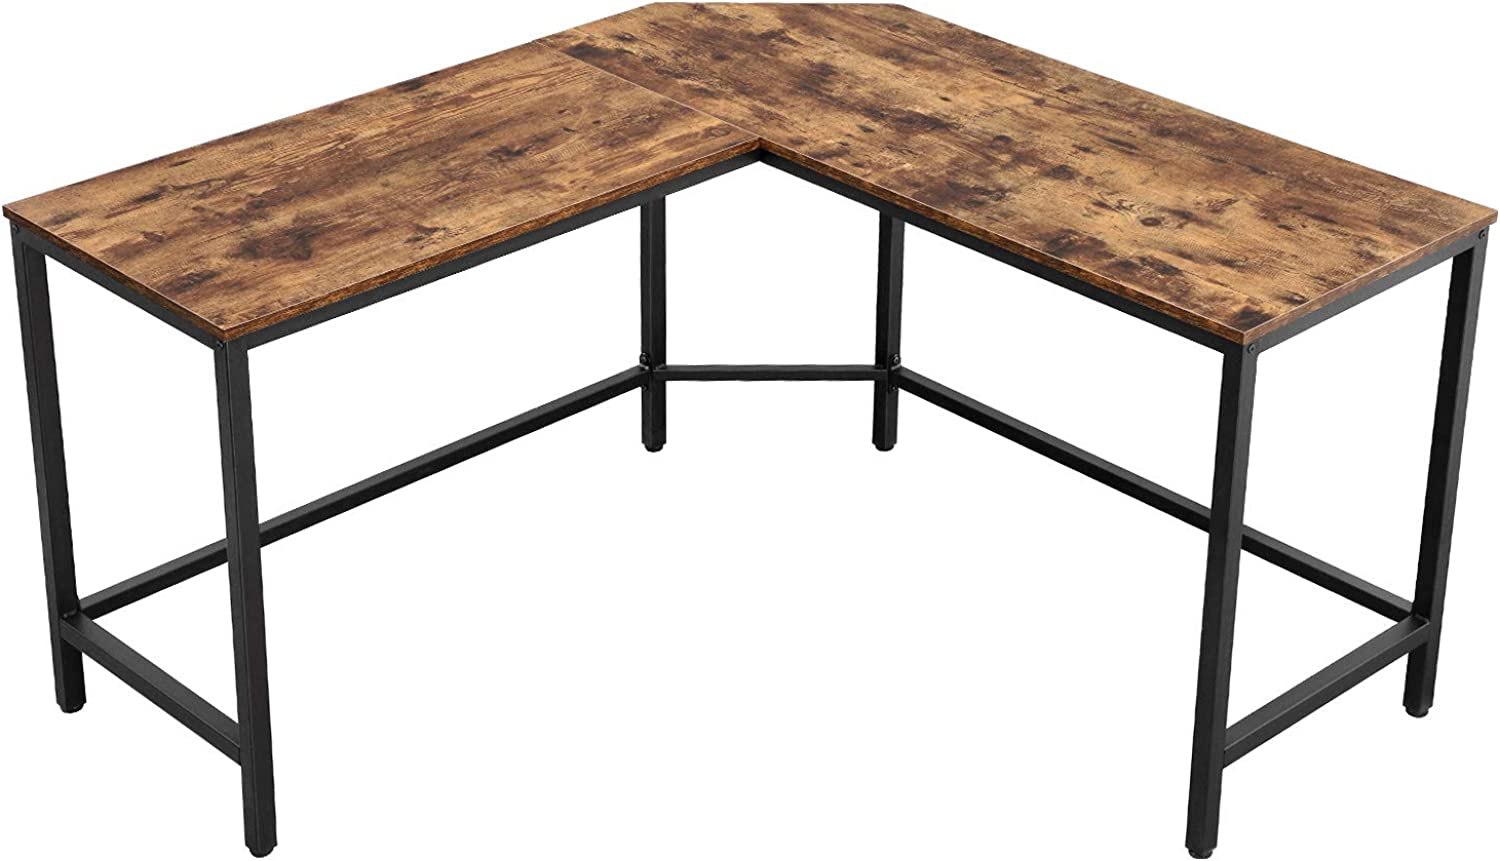 VASAGLE Computer Desk, L-Shaped Industrial Writing Desk, Space-Saving Study Desk, Corner Gaming Desk for Office, Easy to Assemble, Rustic Brown LWD71X